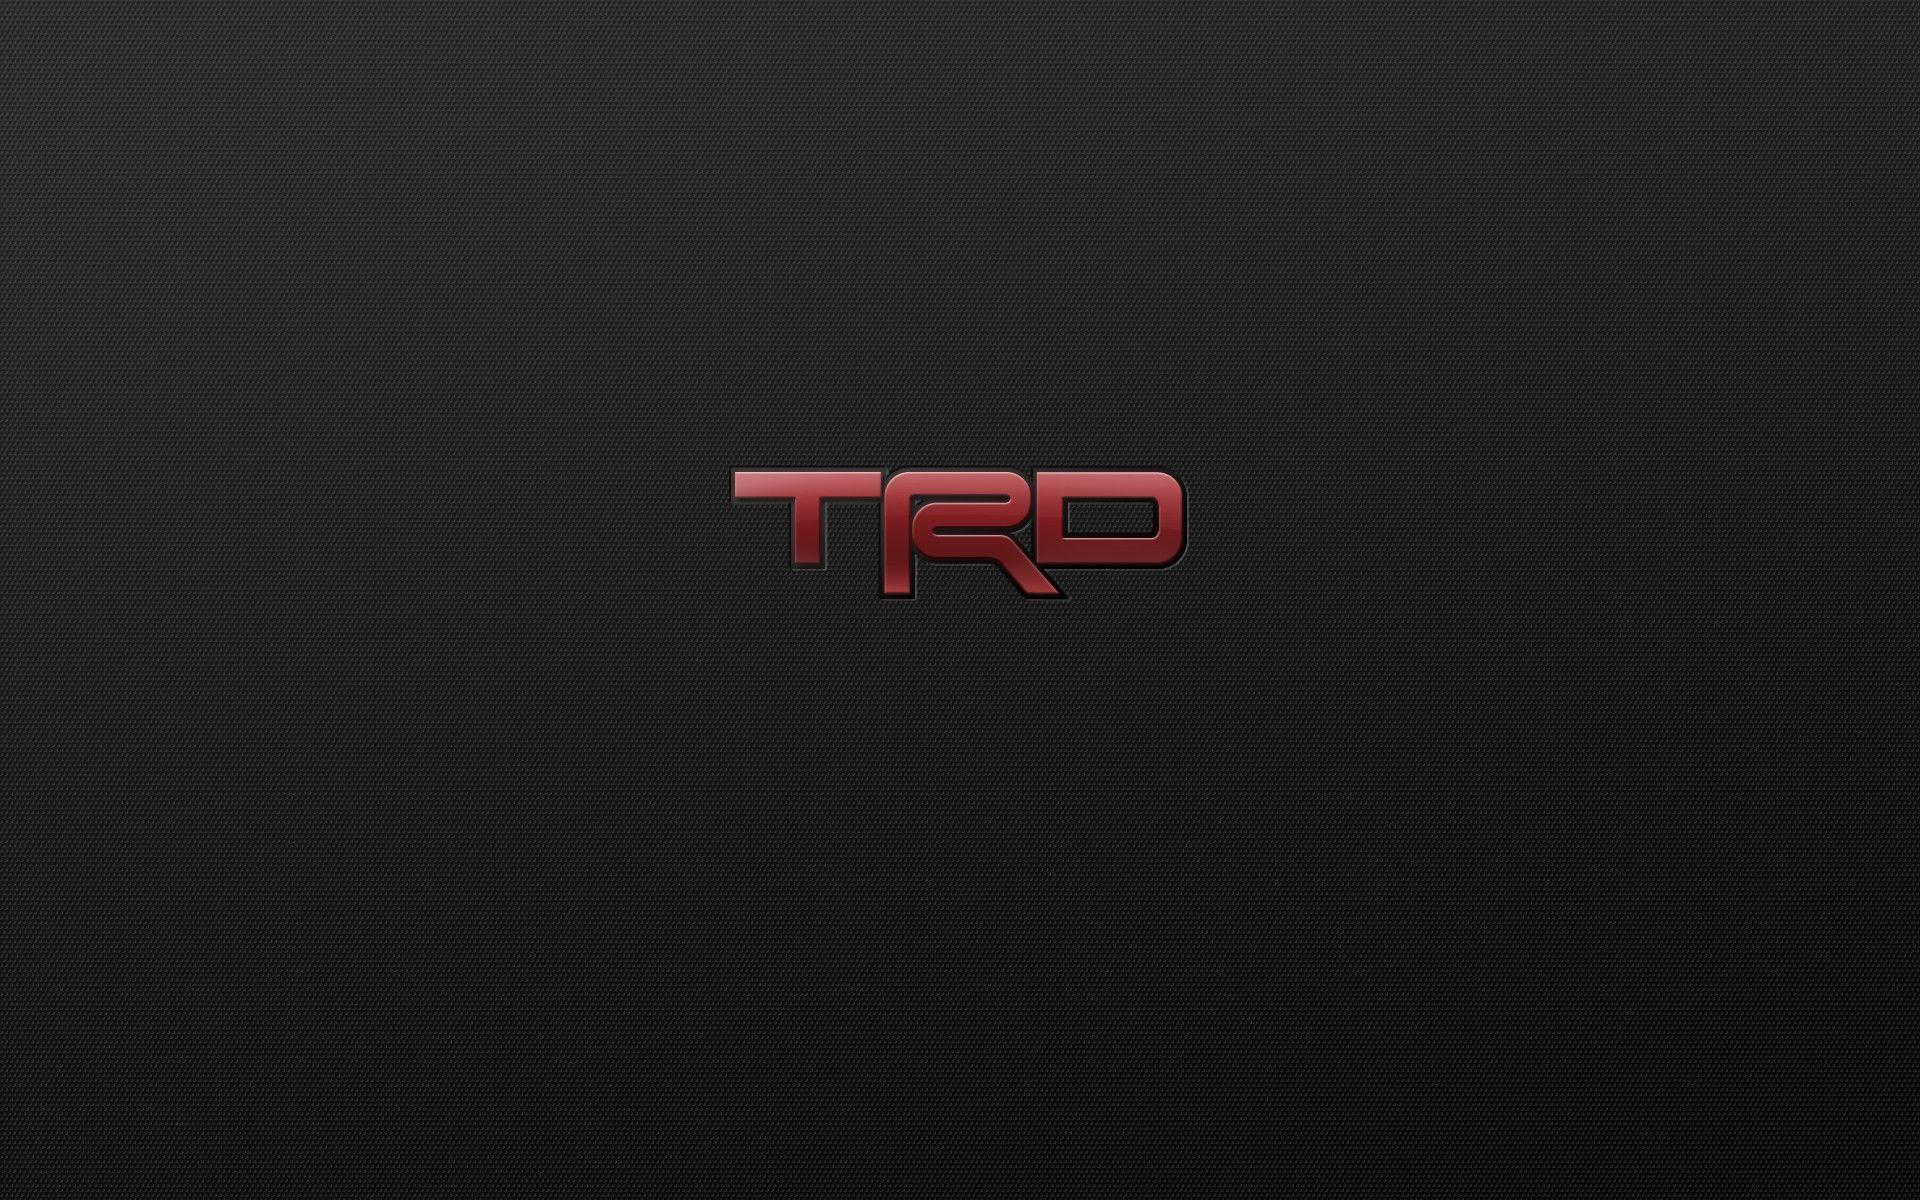 Image Gallery trd background 1920x1200